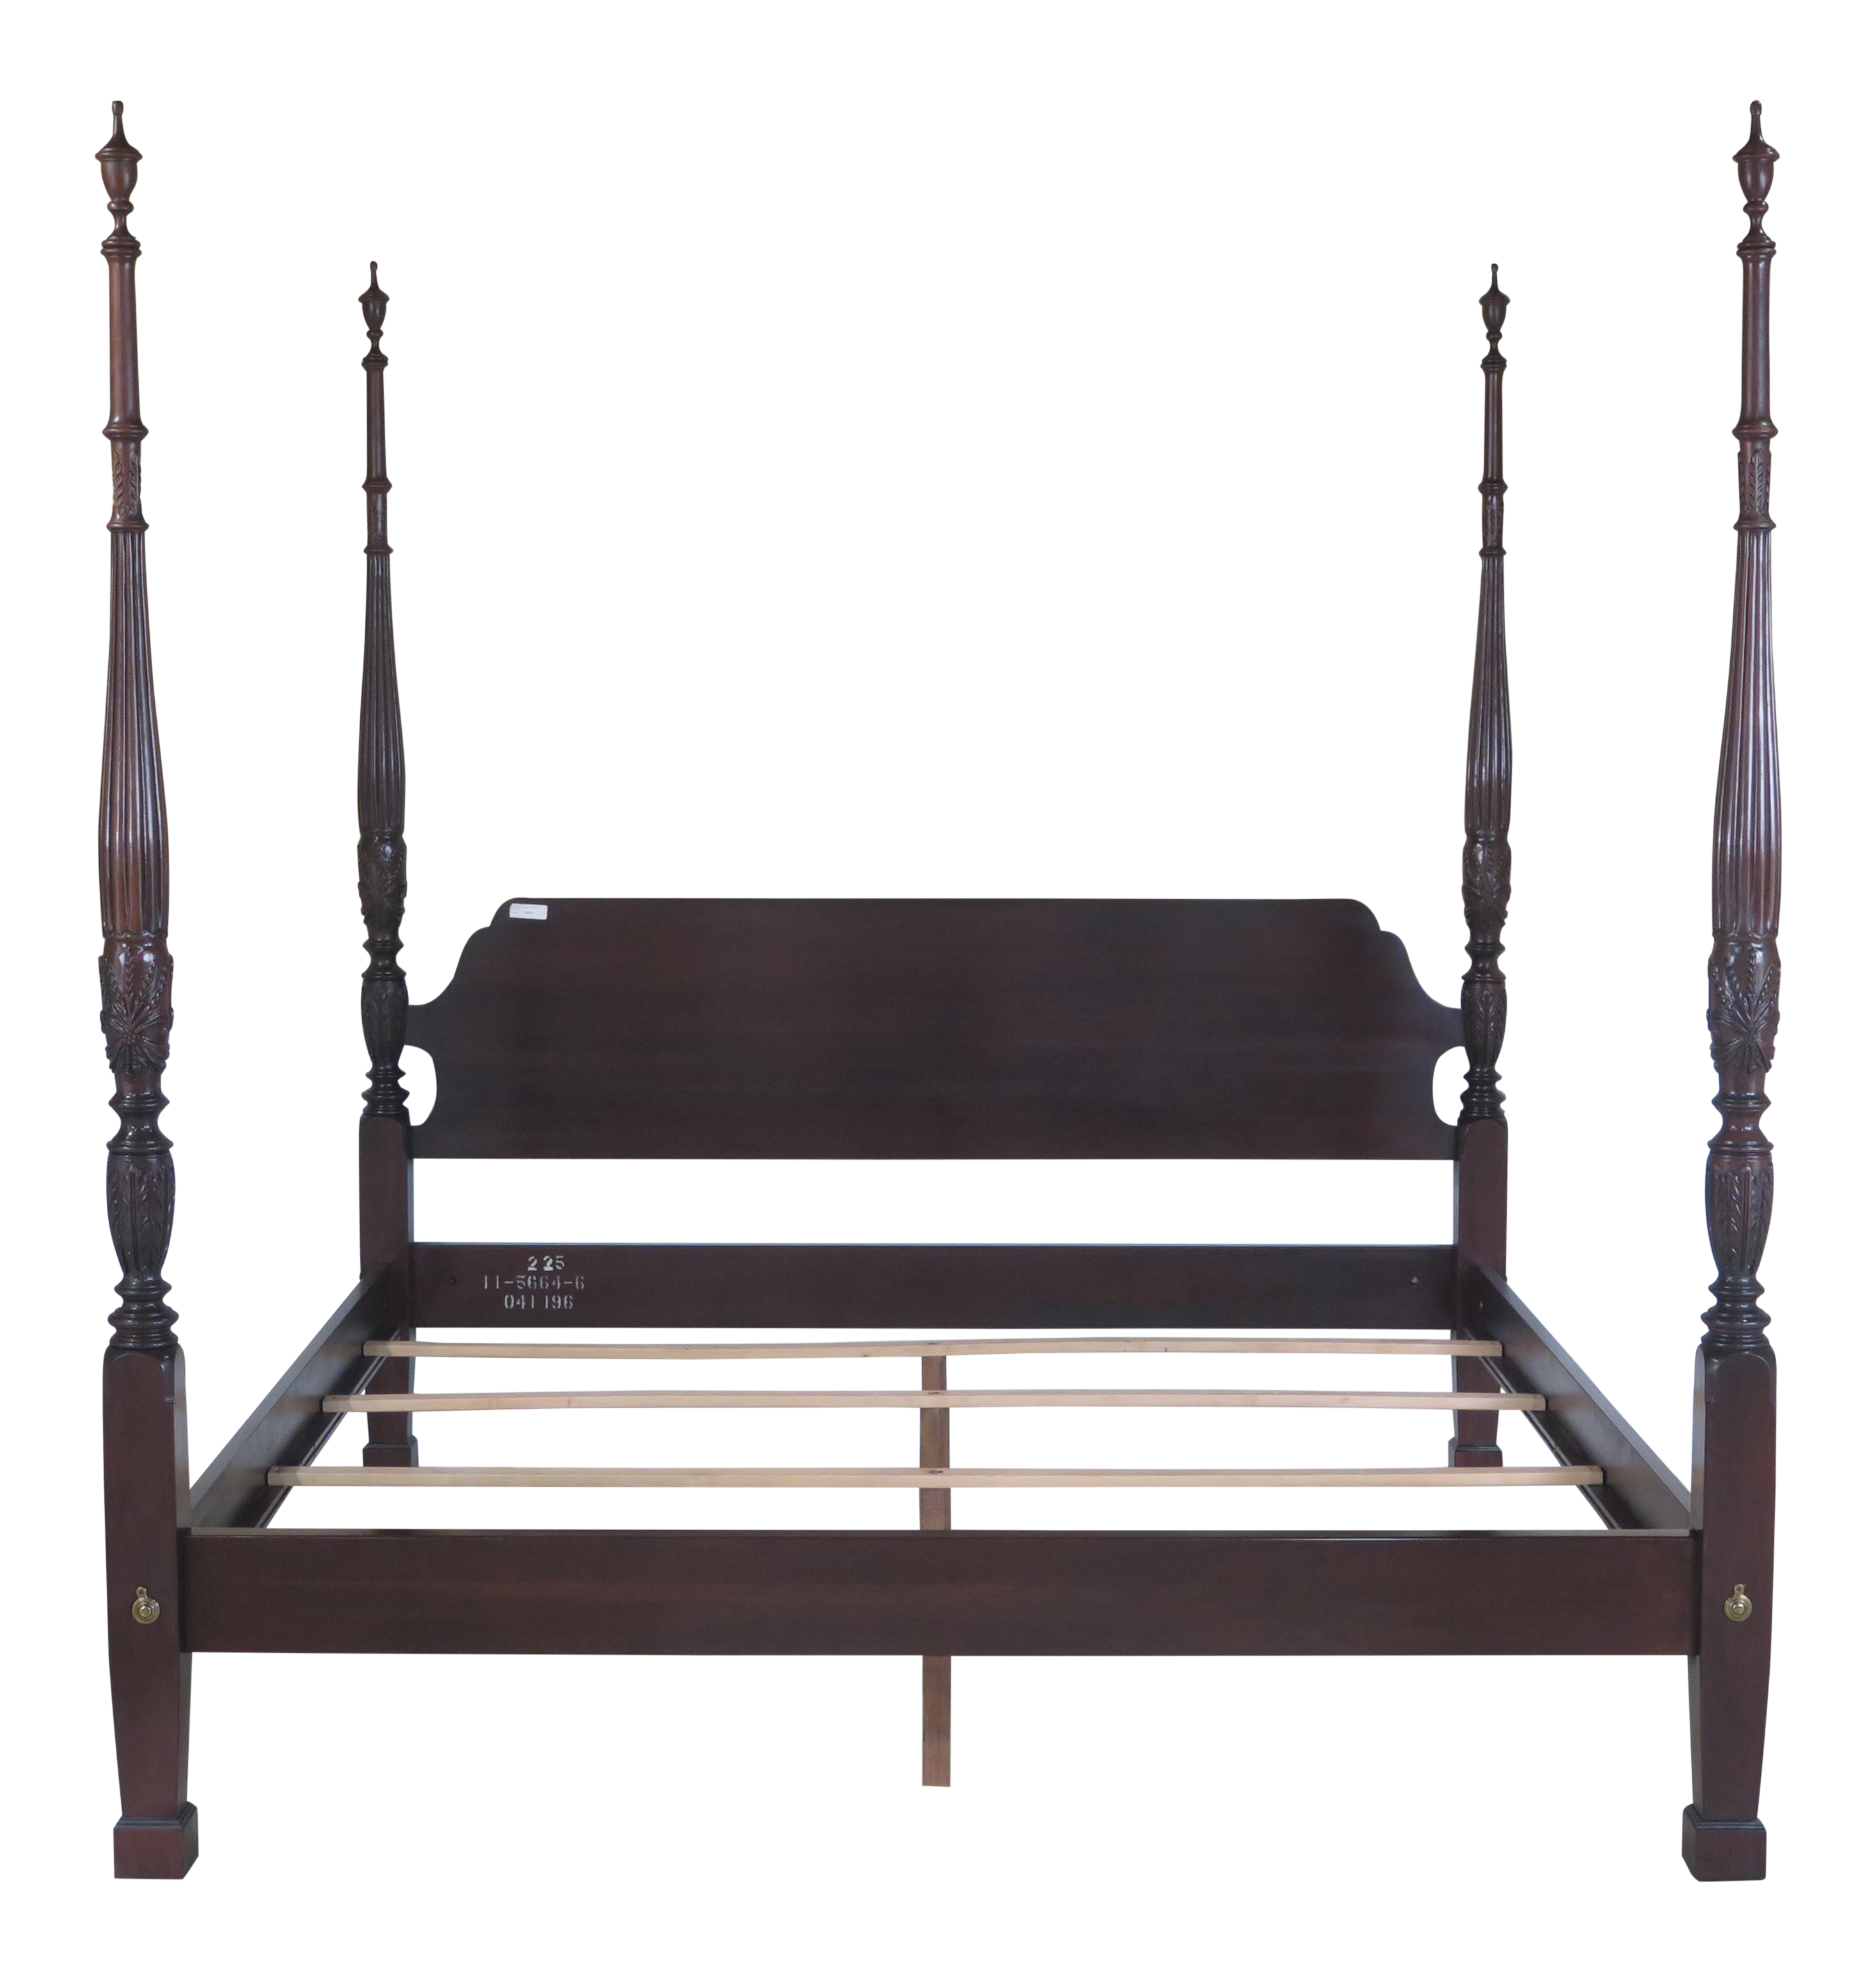 Unique ethan allen beds photograph home gallery image and wallpaper - Ethan allen metal bed ...